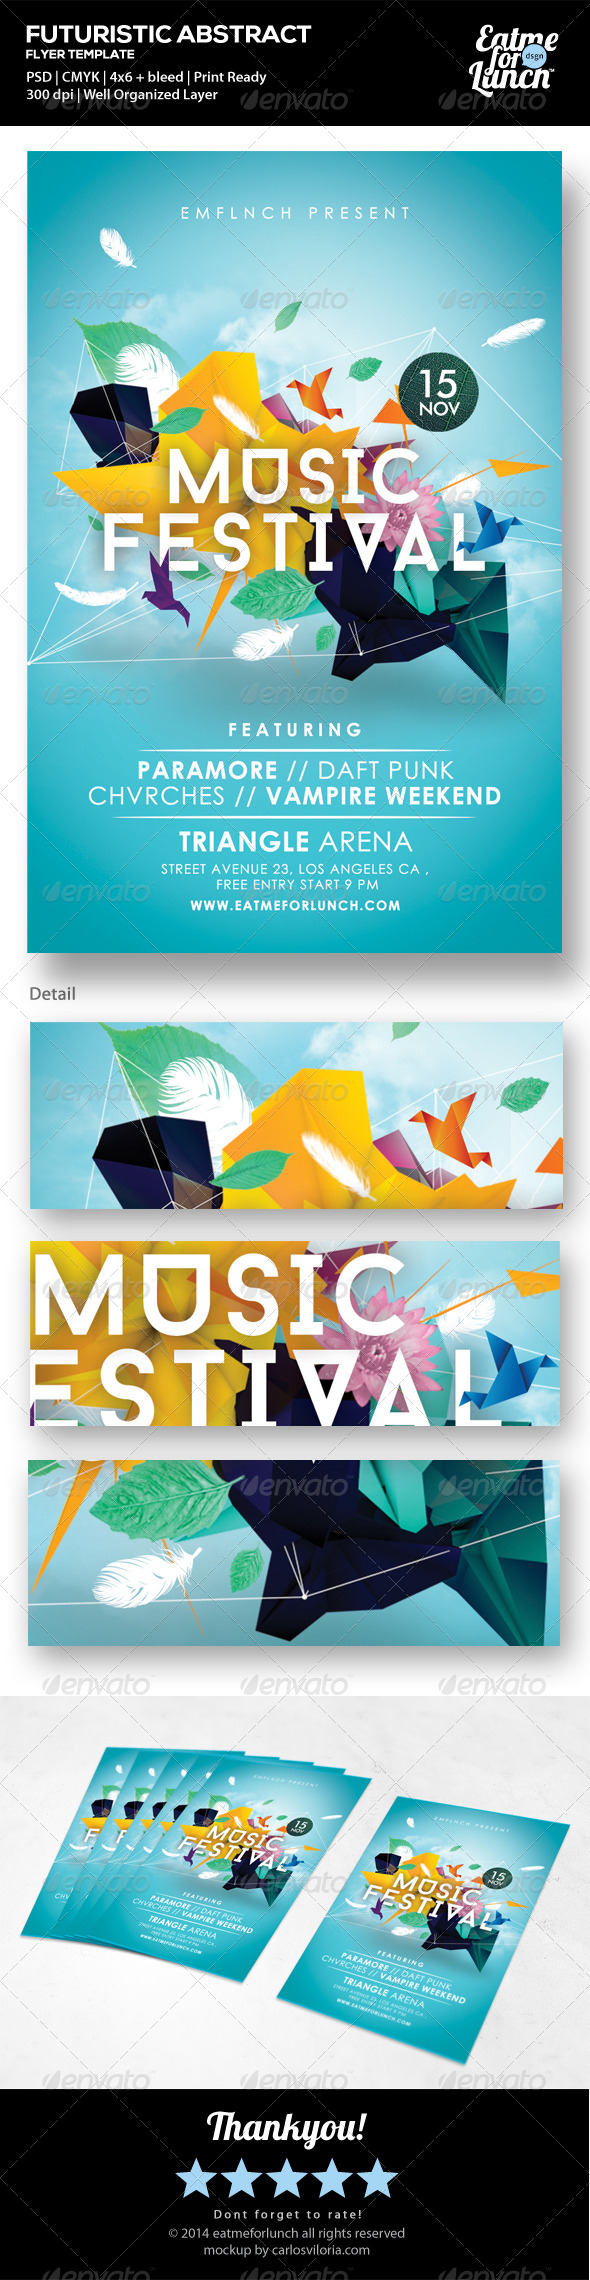 Futuristic Abstract Gigs/Festival Flyer Templates - Concerts Events